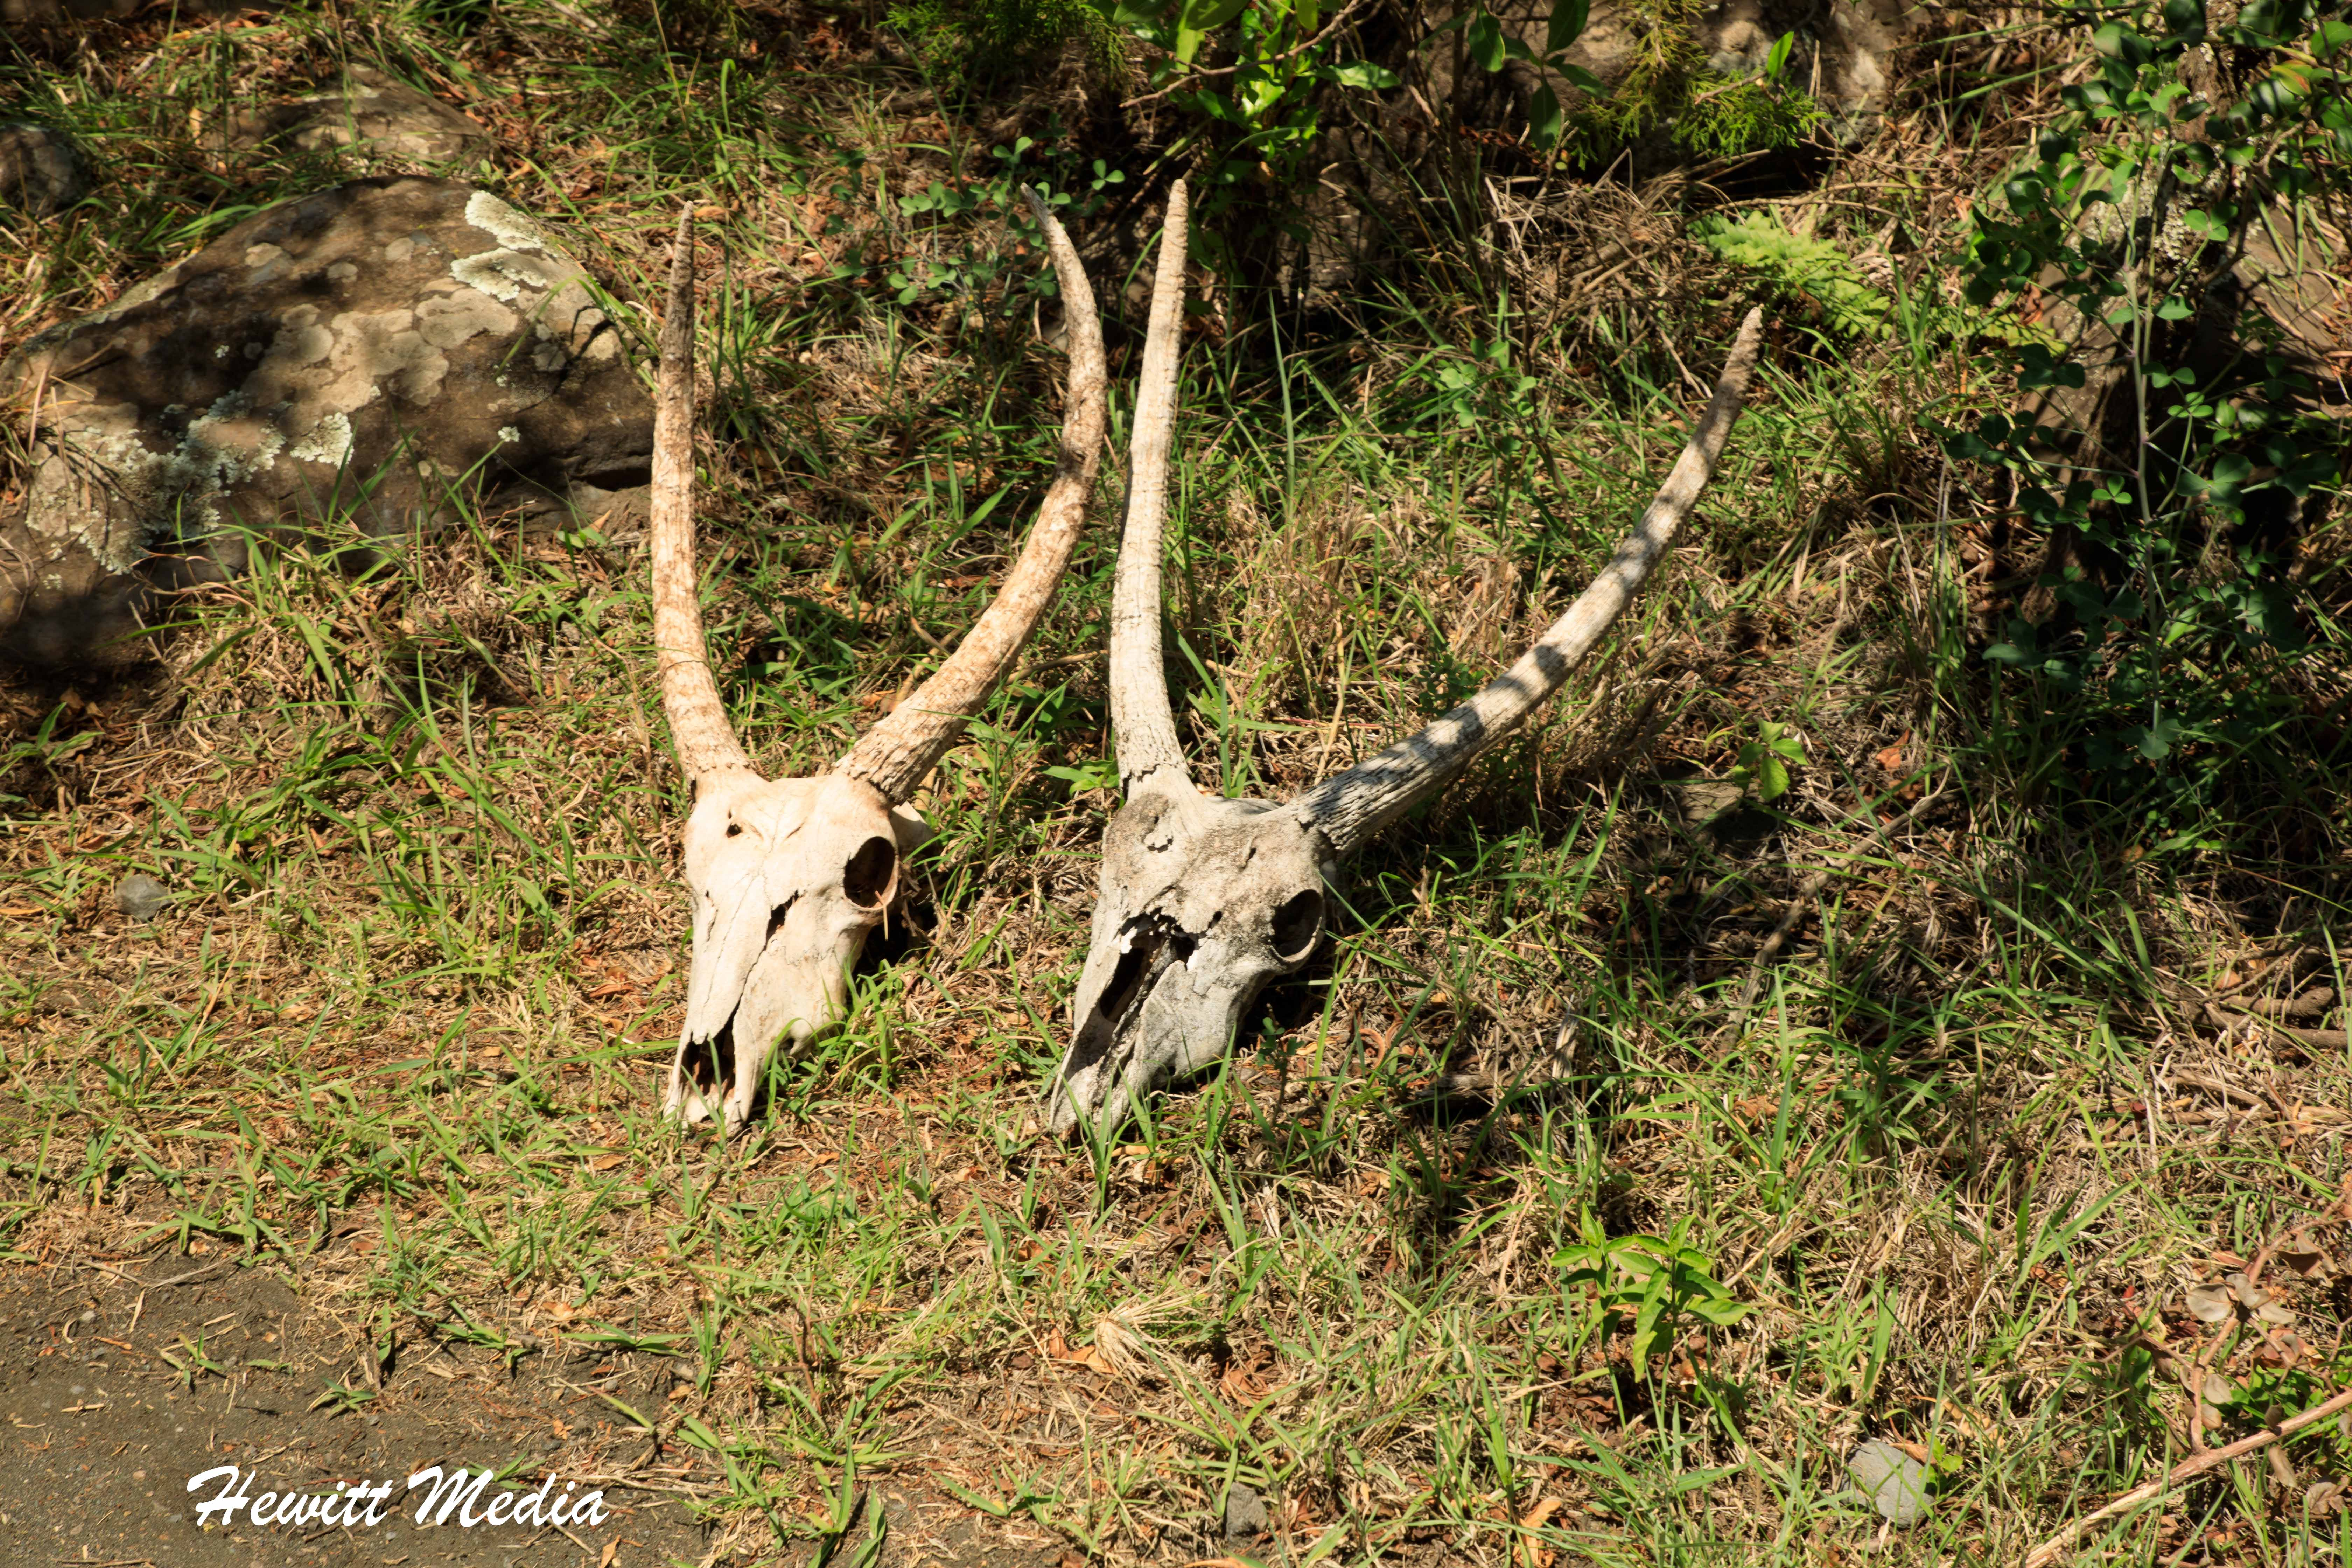 Animal skulls found in Arusha National Park